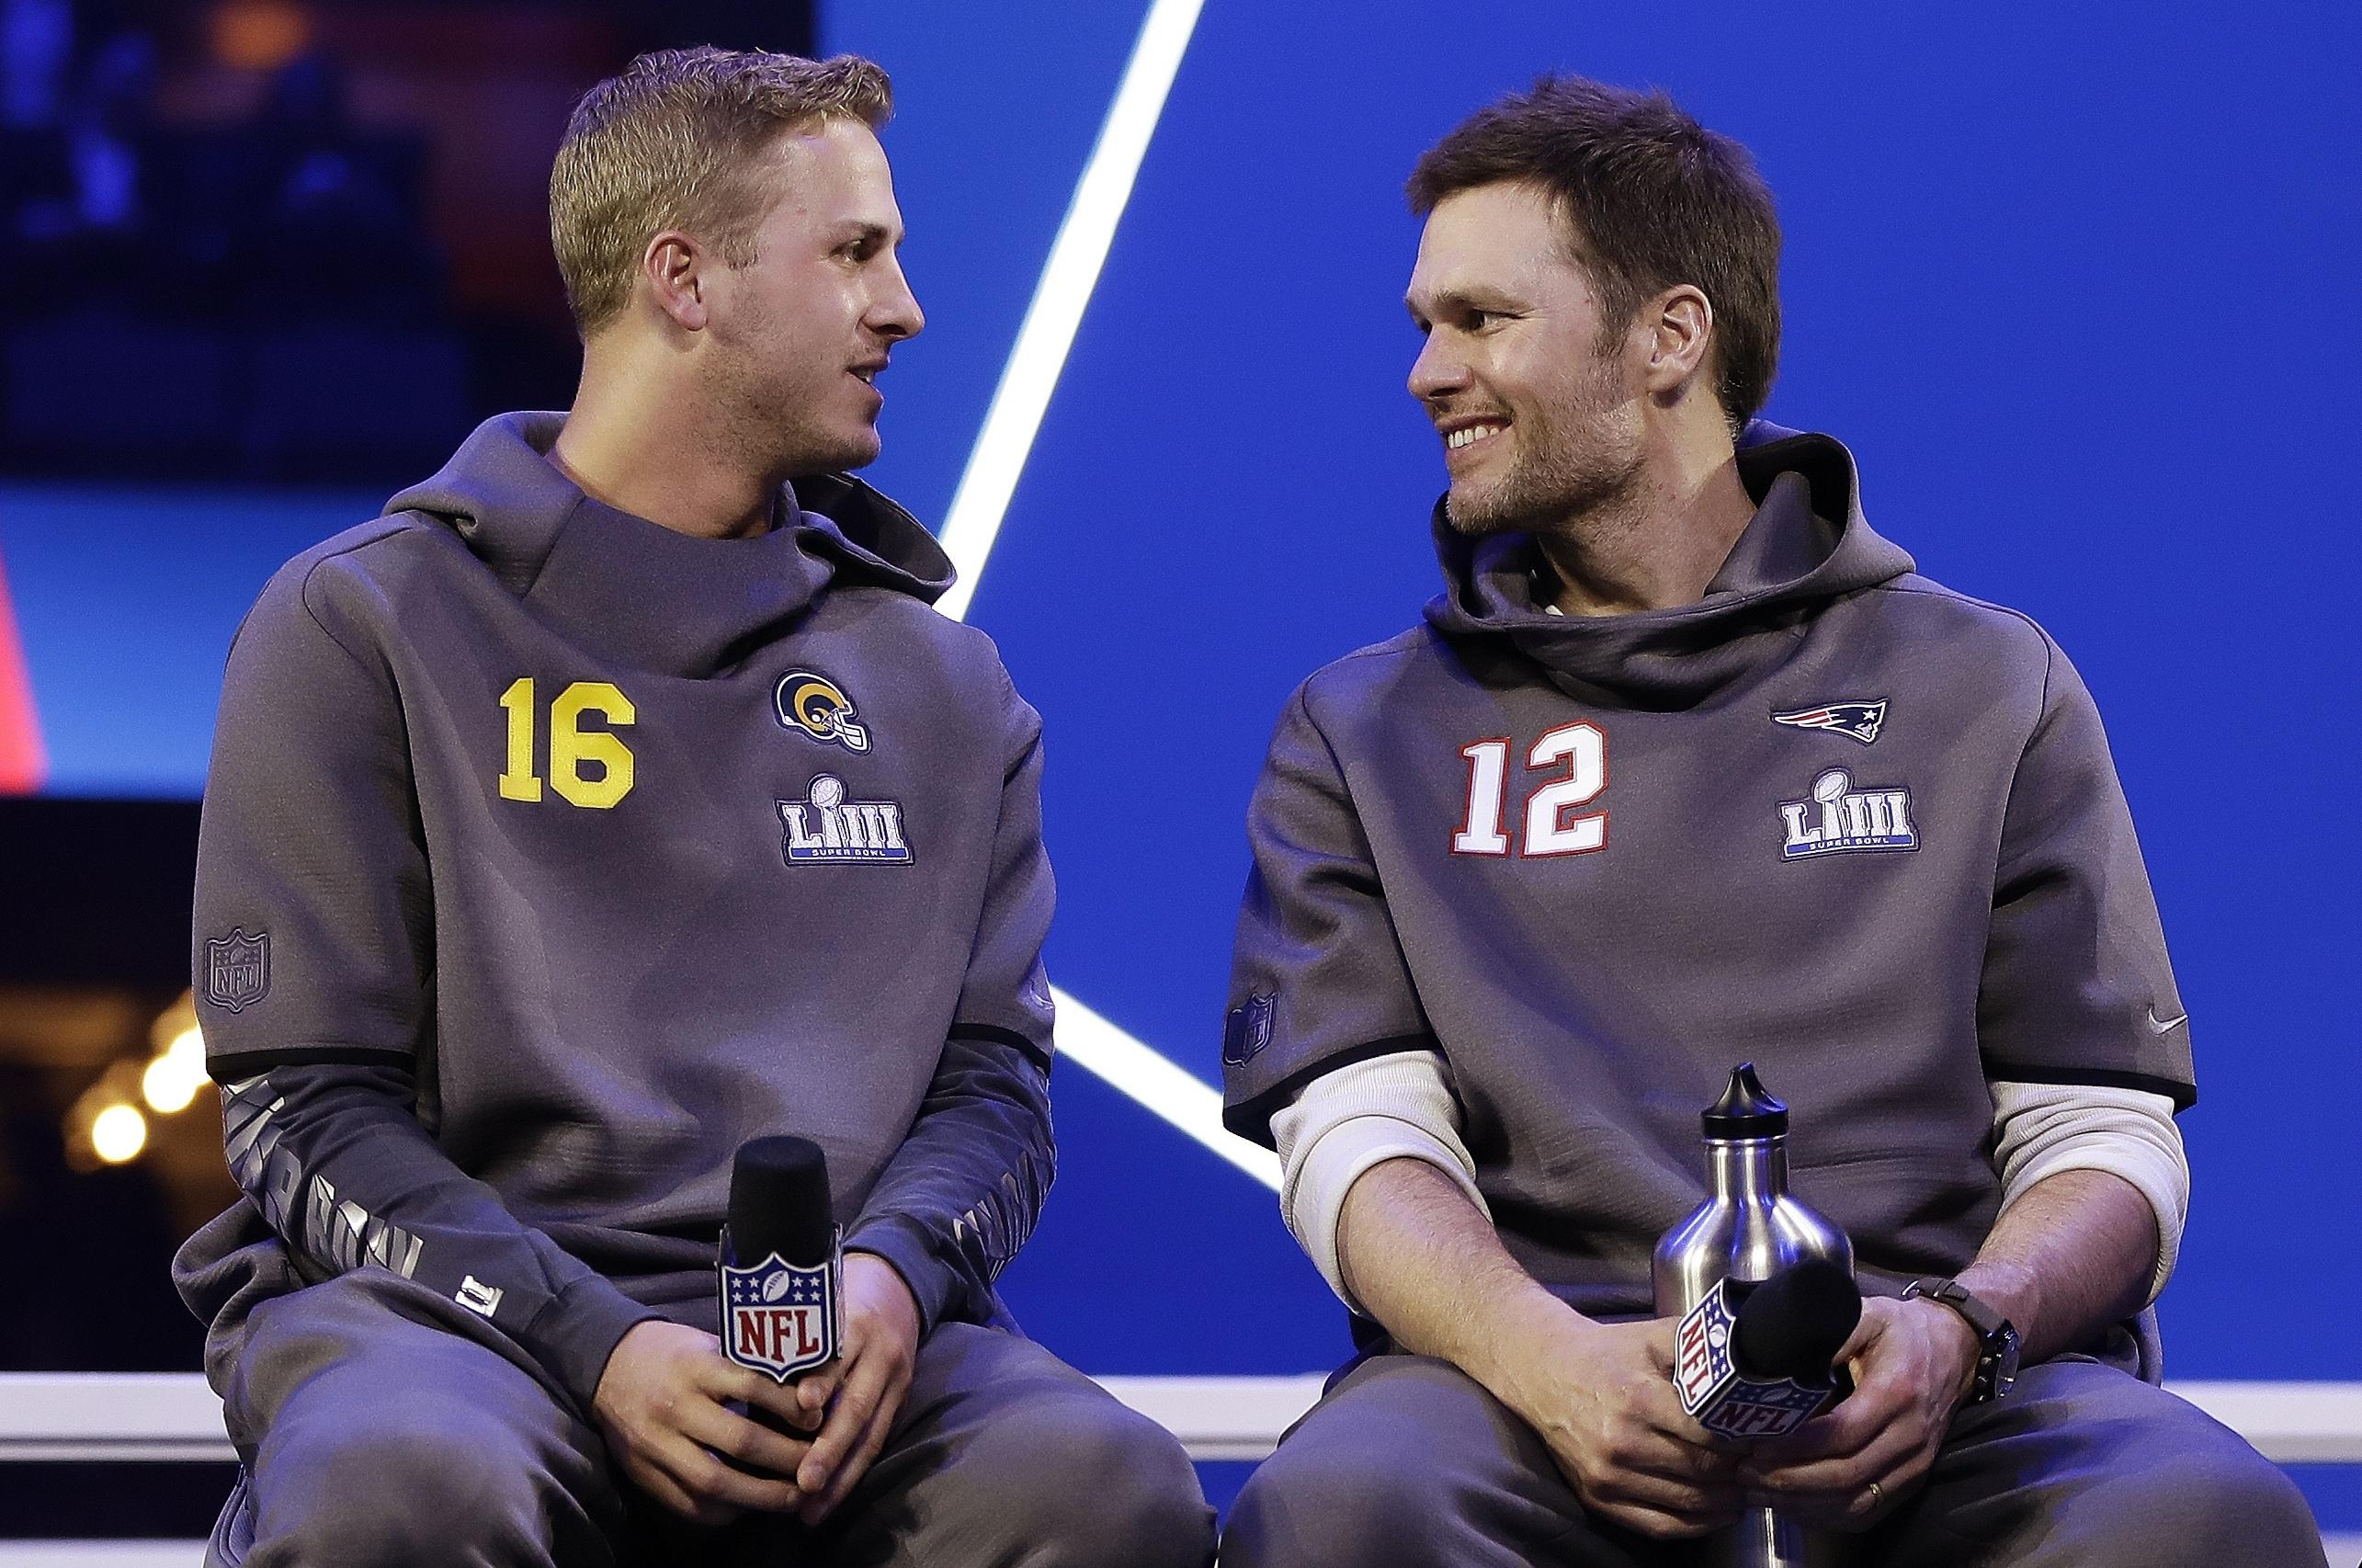 Tom Brady, Jared Goff have massive age gap, but same Super Bowl